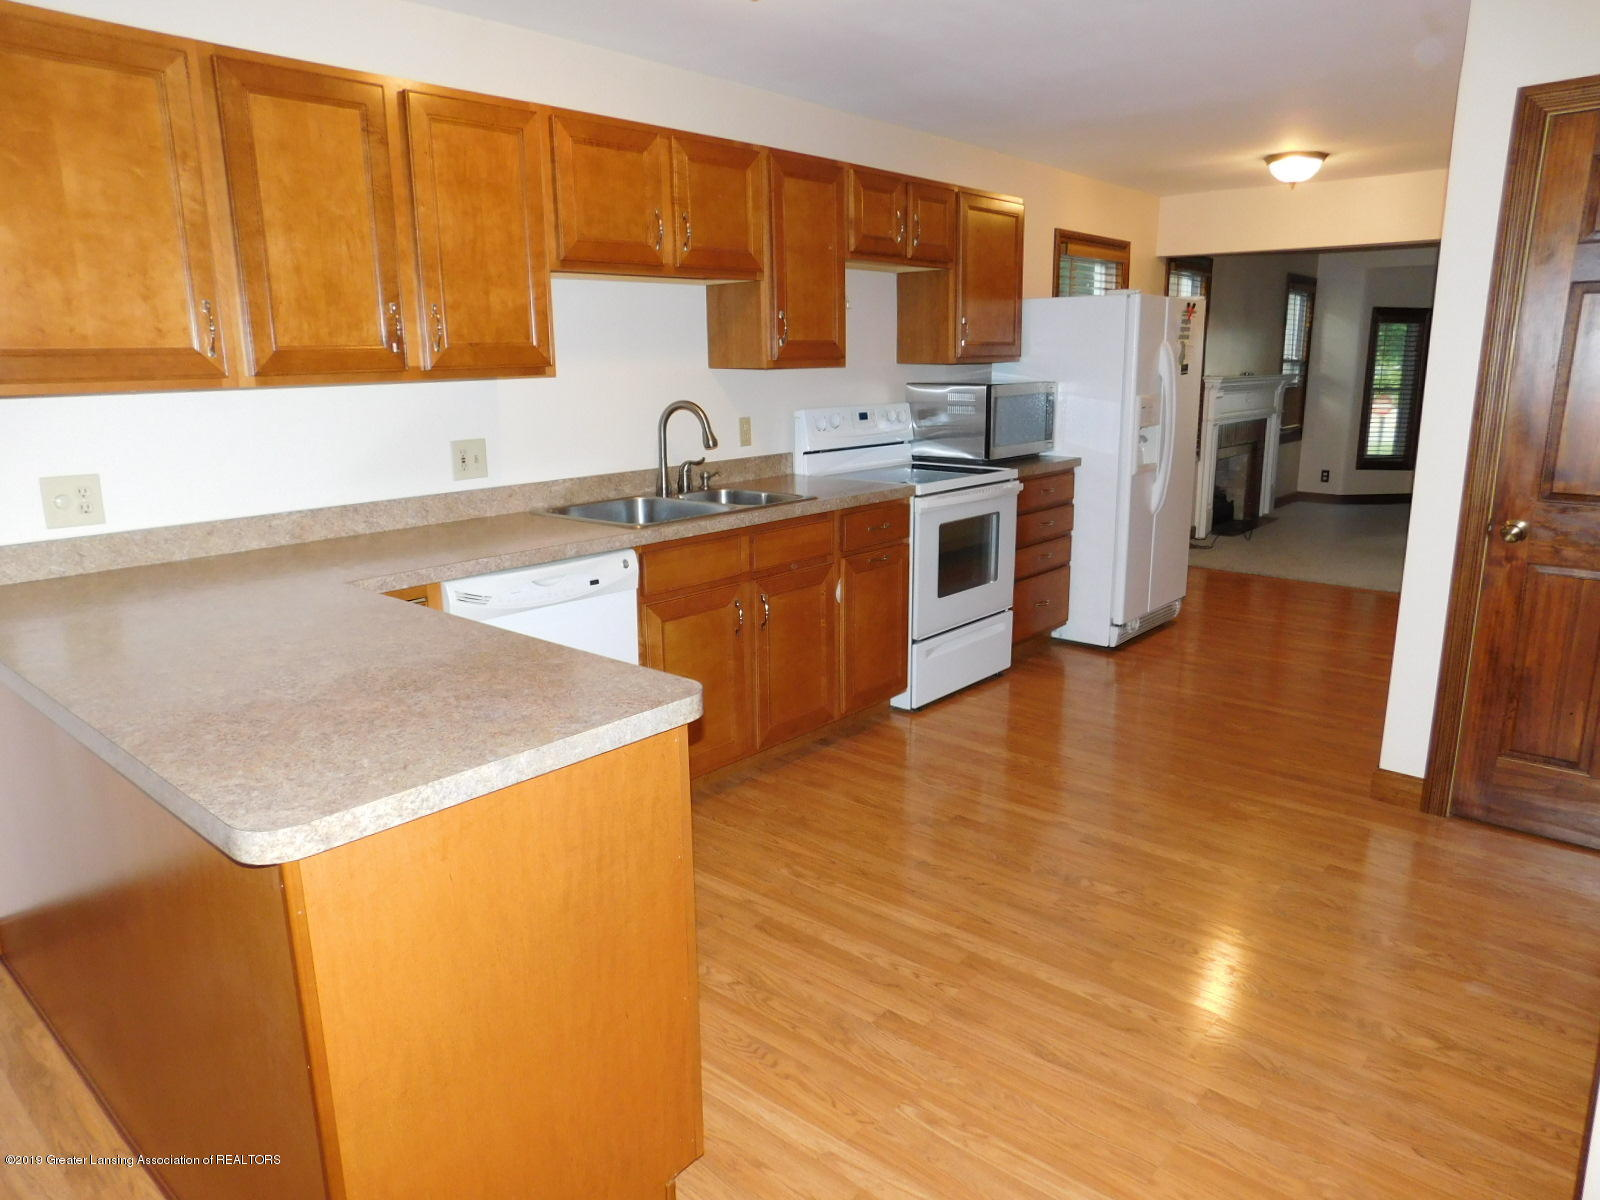 725 Merrill Ave - KITCHEN - 11